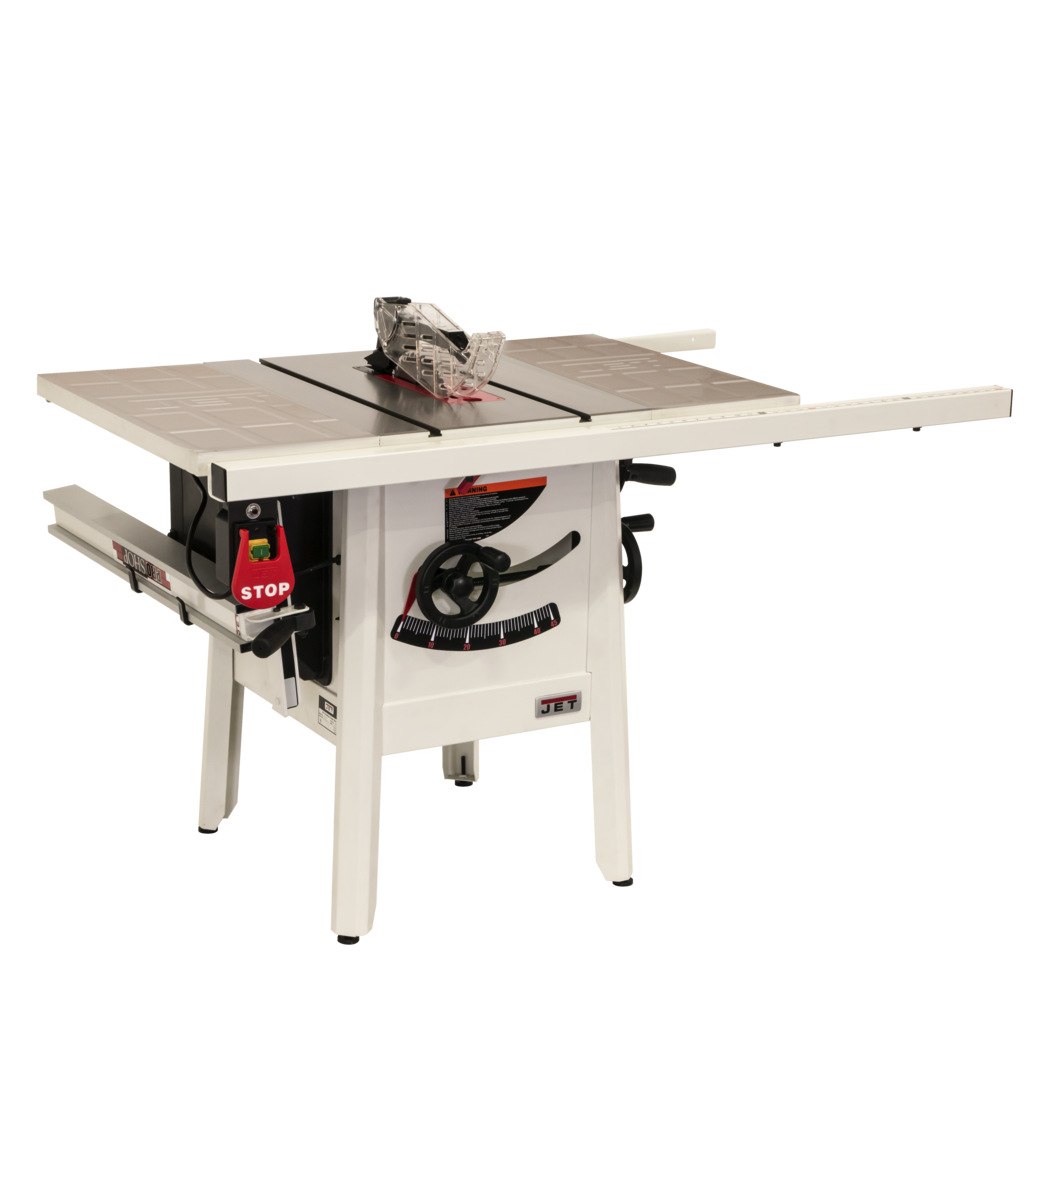 "The JPS-10 1.75 HP 115V 30"" Proshop Tablesaw with Steel wings"